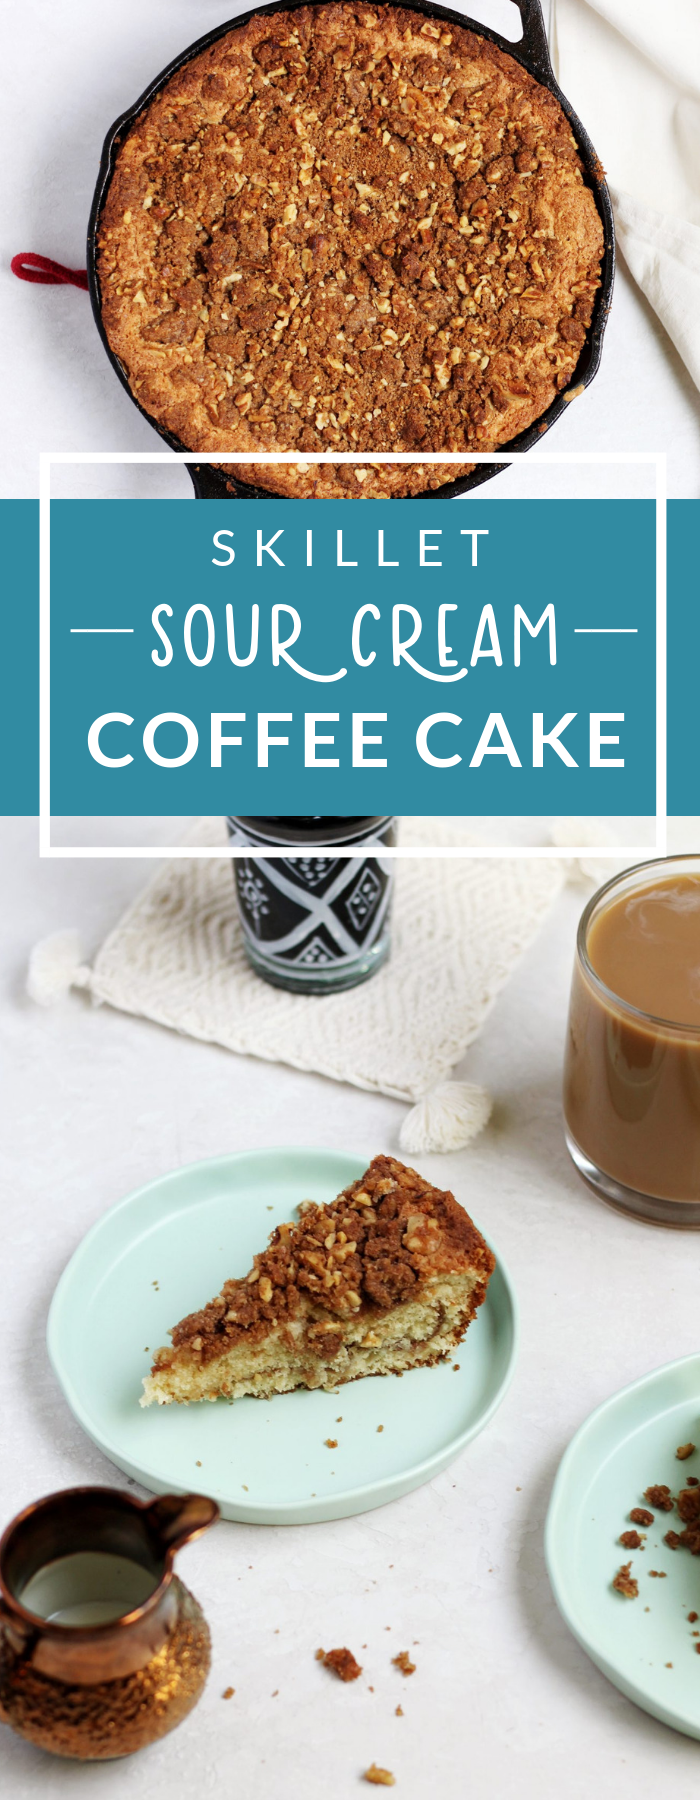 This Sour Cream Coffee Cake with a walnut streusel is delicious, tender, and has double the streusel. Easy to make in your skillet!